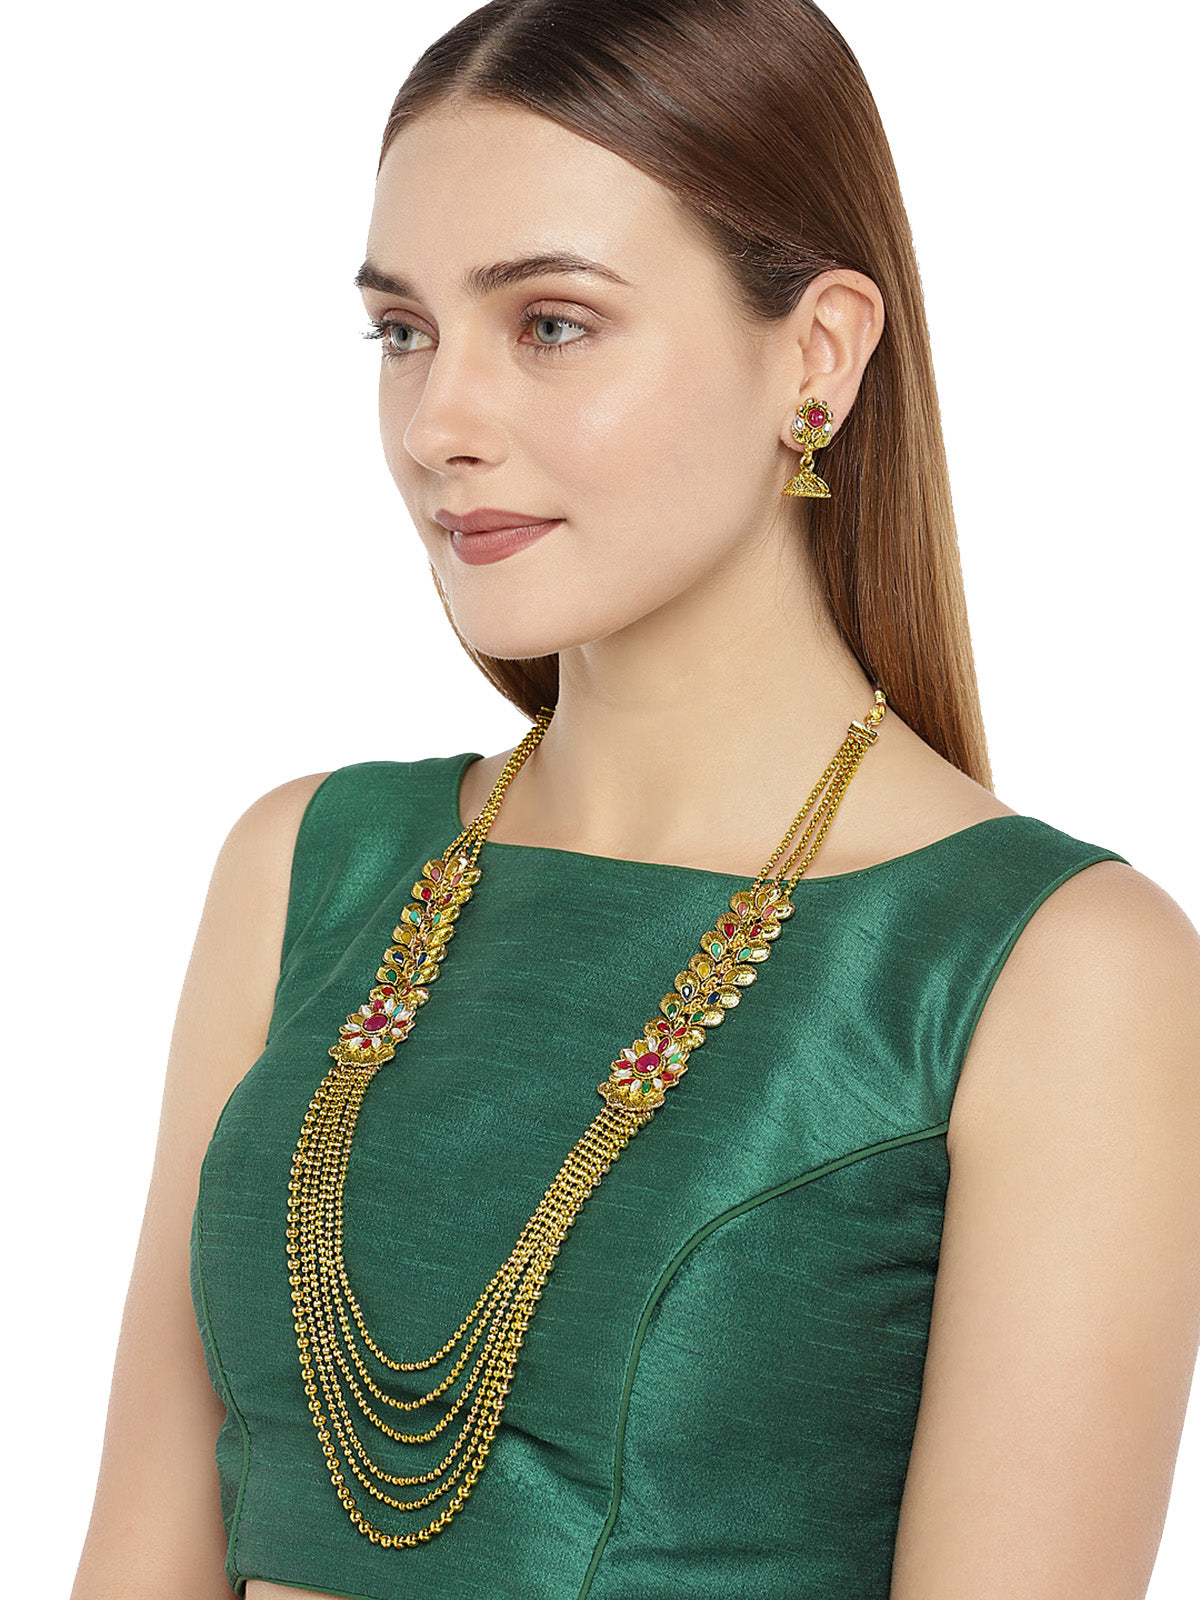 Zaveri Pearls Antique Gold Tone Multi layer Long Necklace Set-ZAVERI PEARLS1-Necklace Set